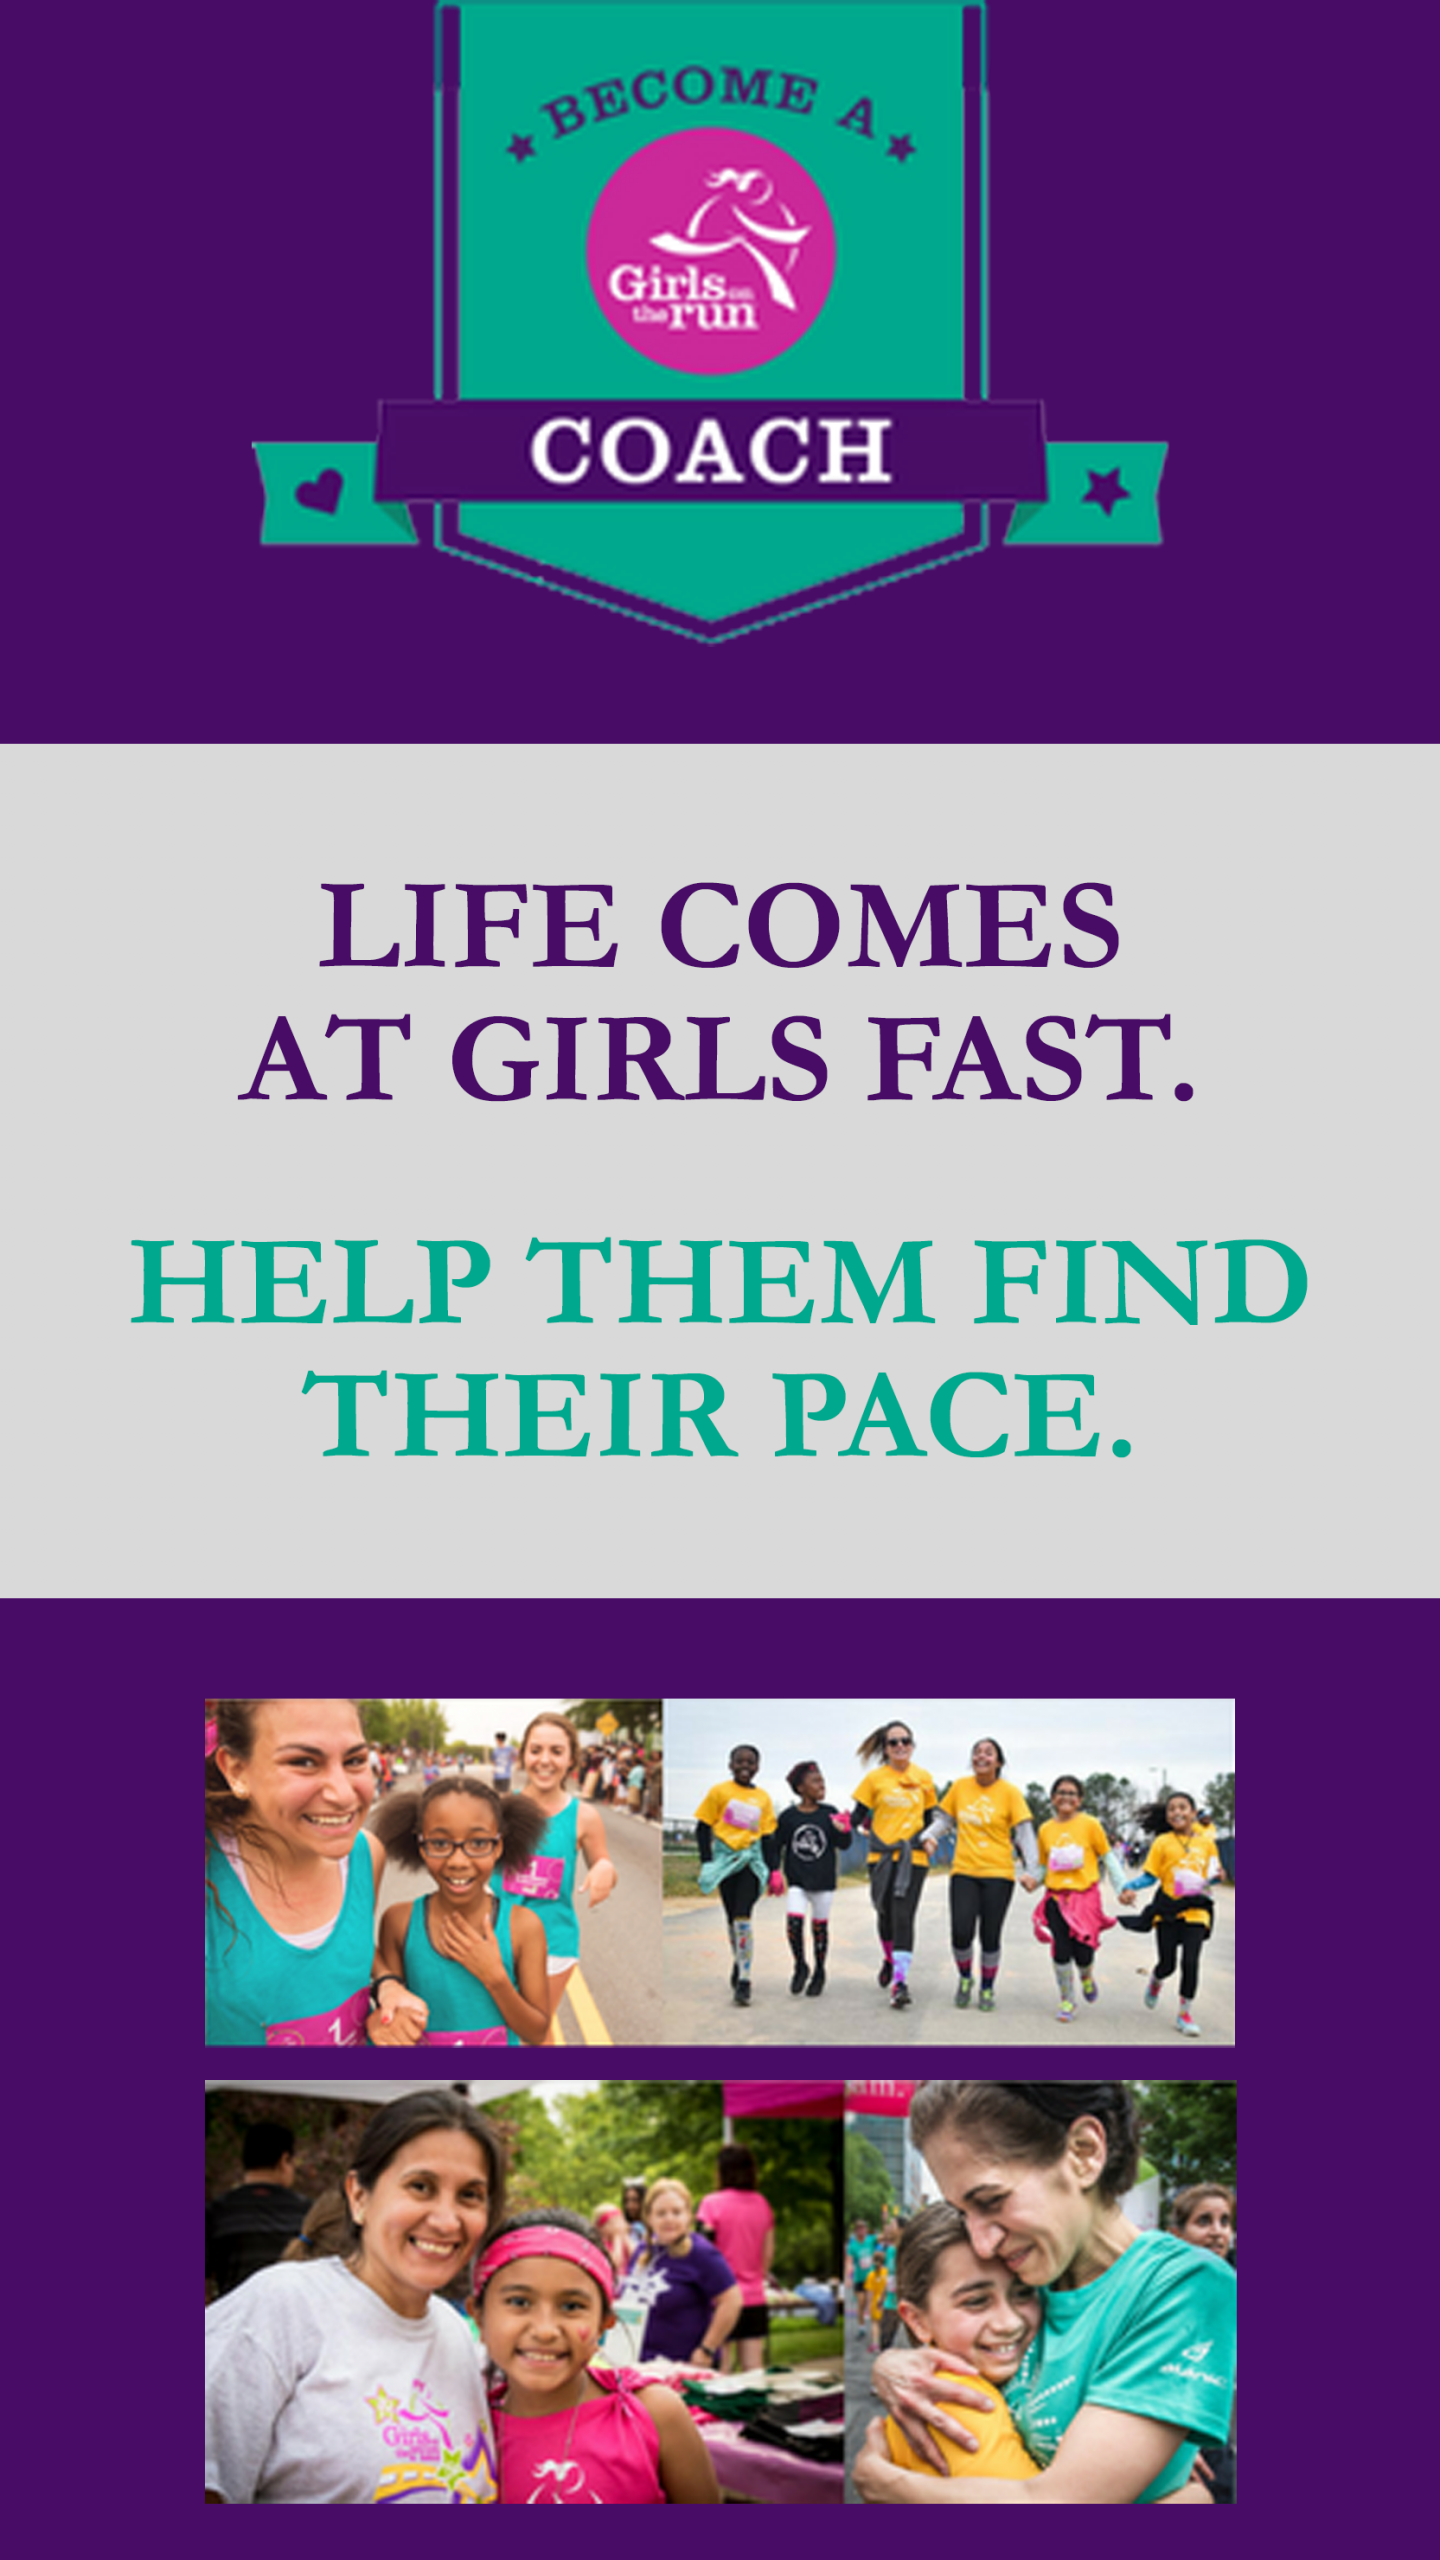 Girls on the Run Looking for Coaches